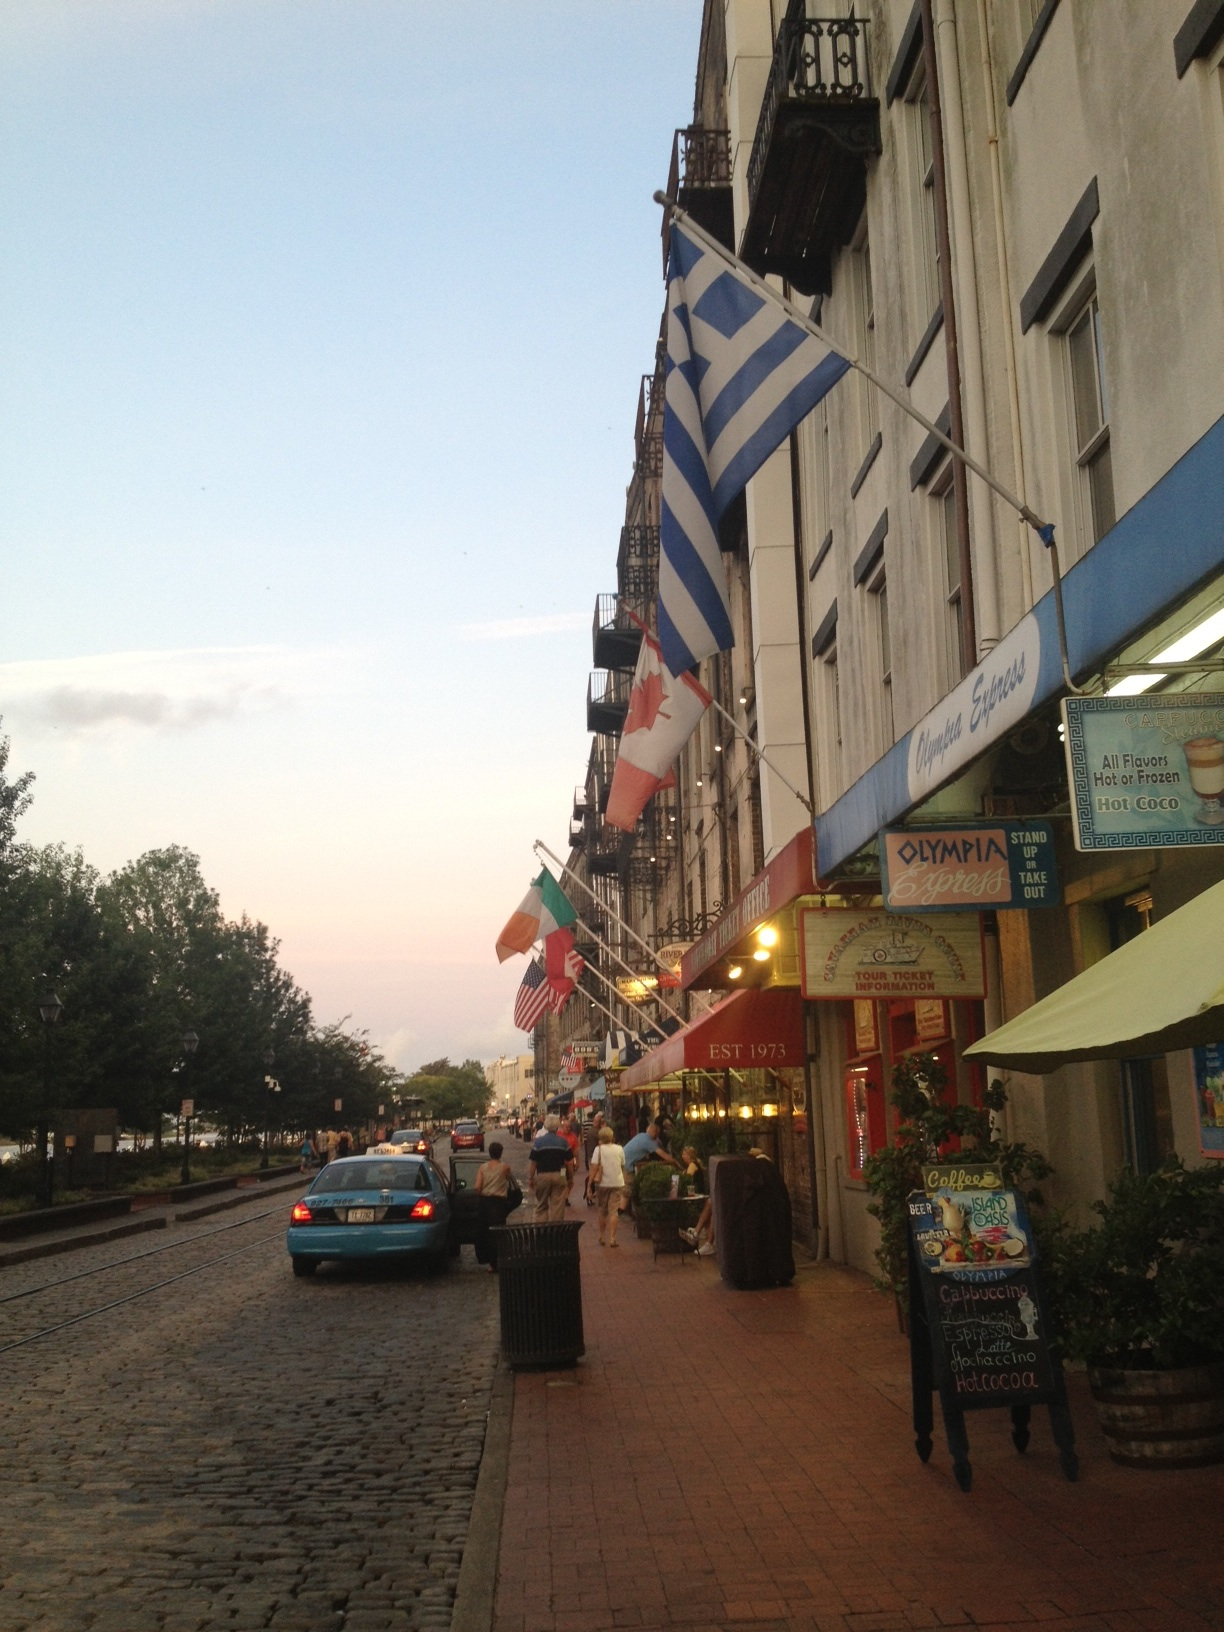 The Savannah, GA riverfront is a charming place to eat, drink, and be merry.